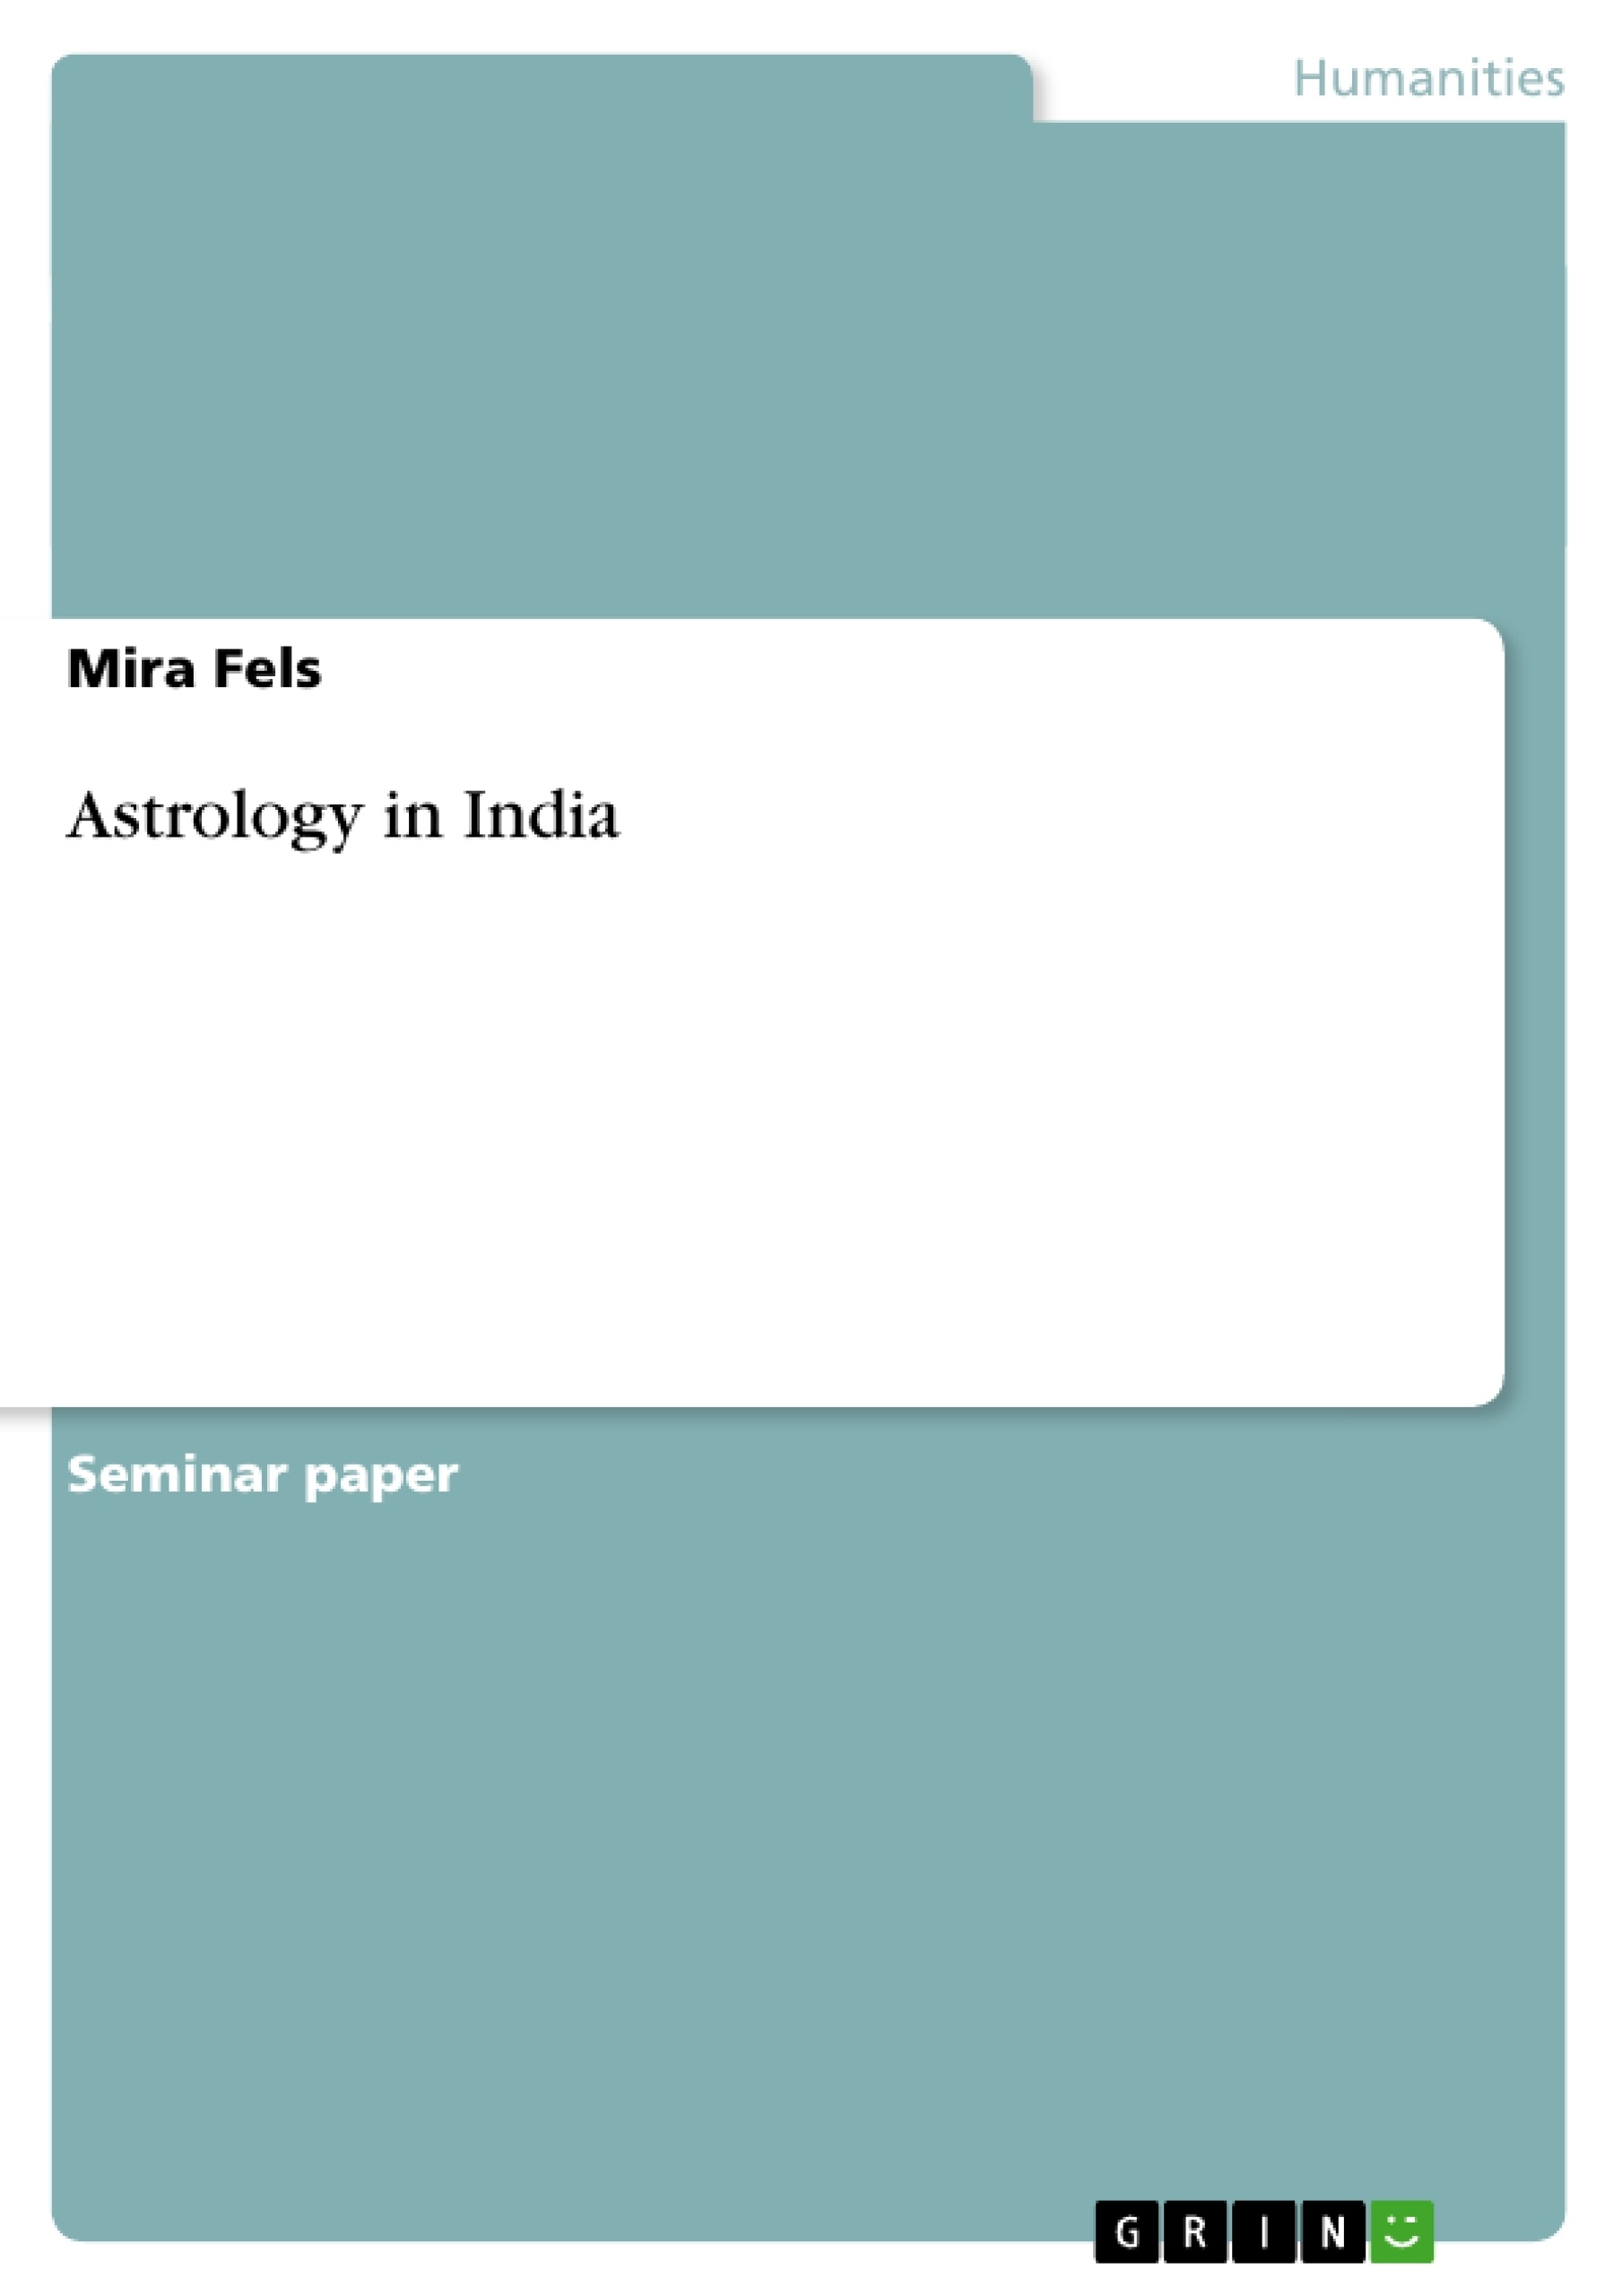 Title: Astrology in India